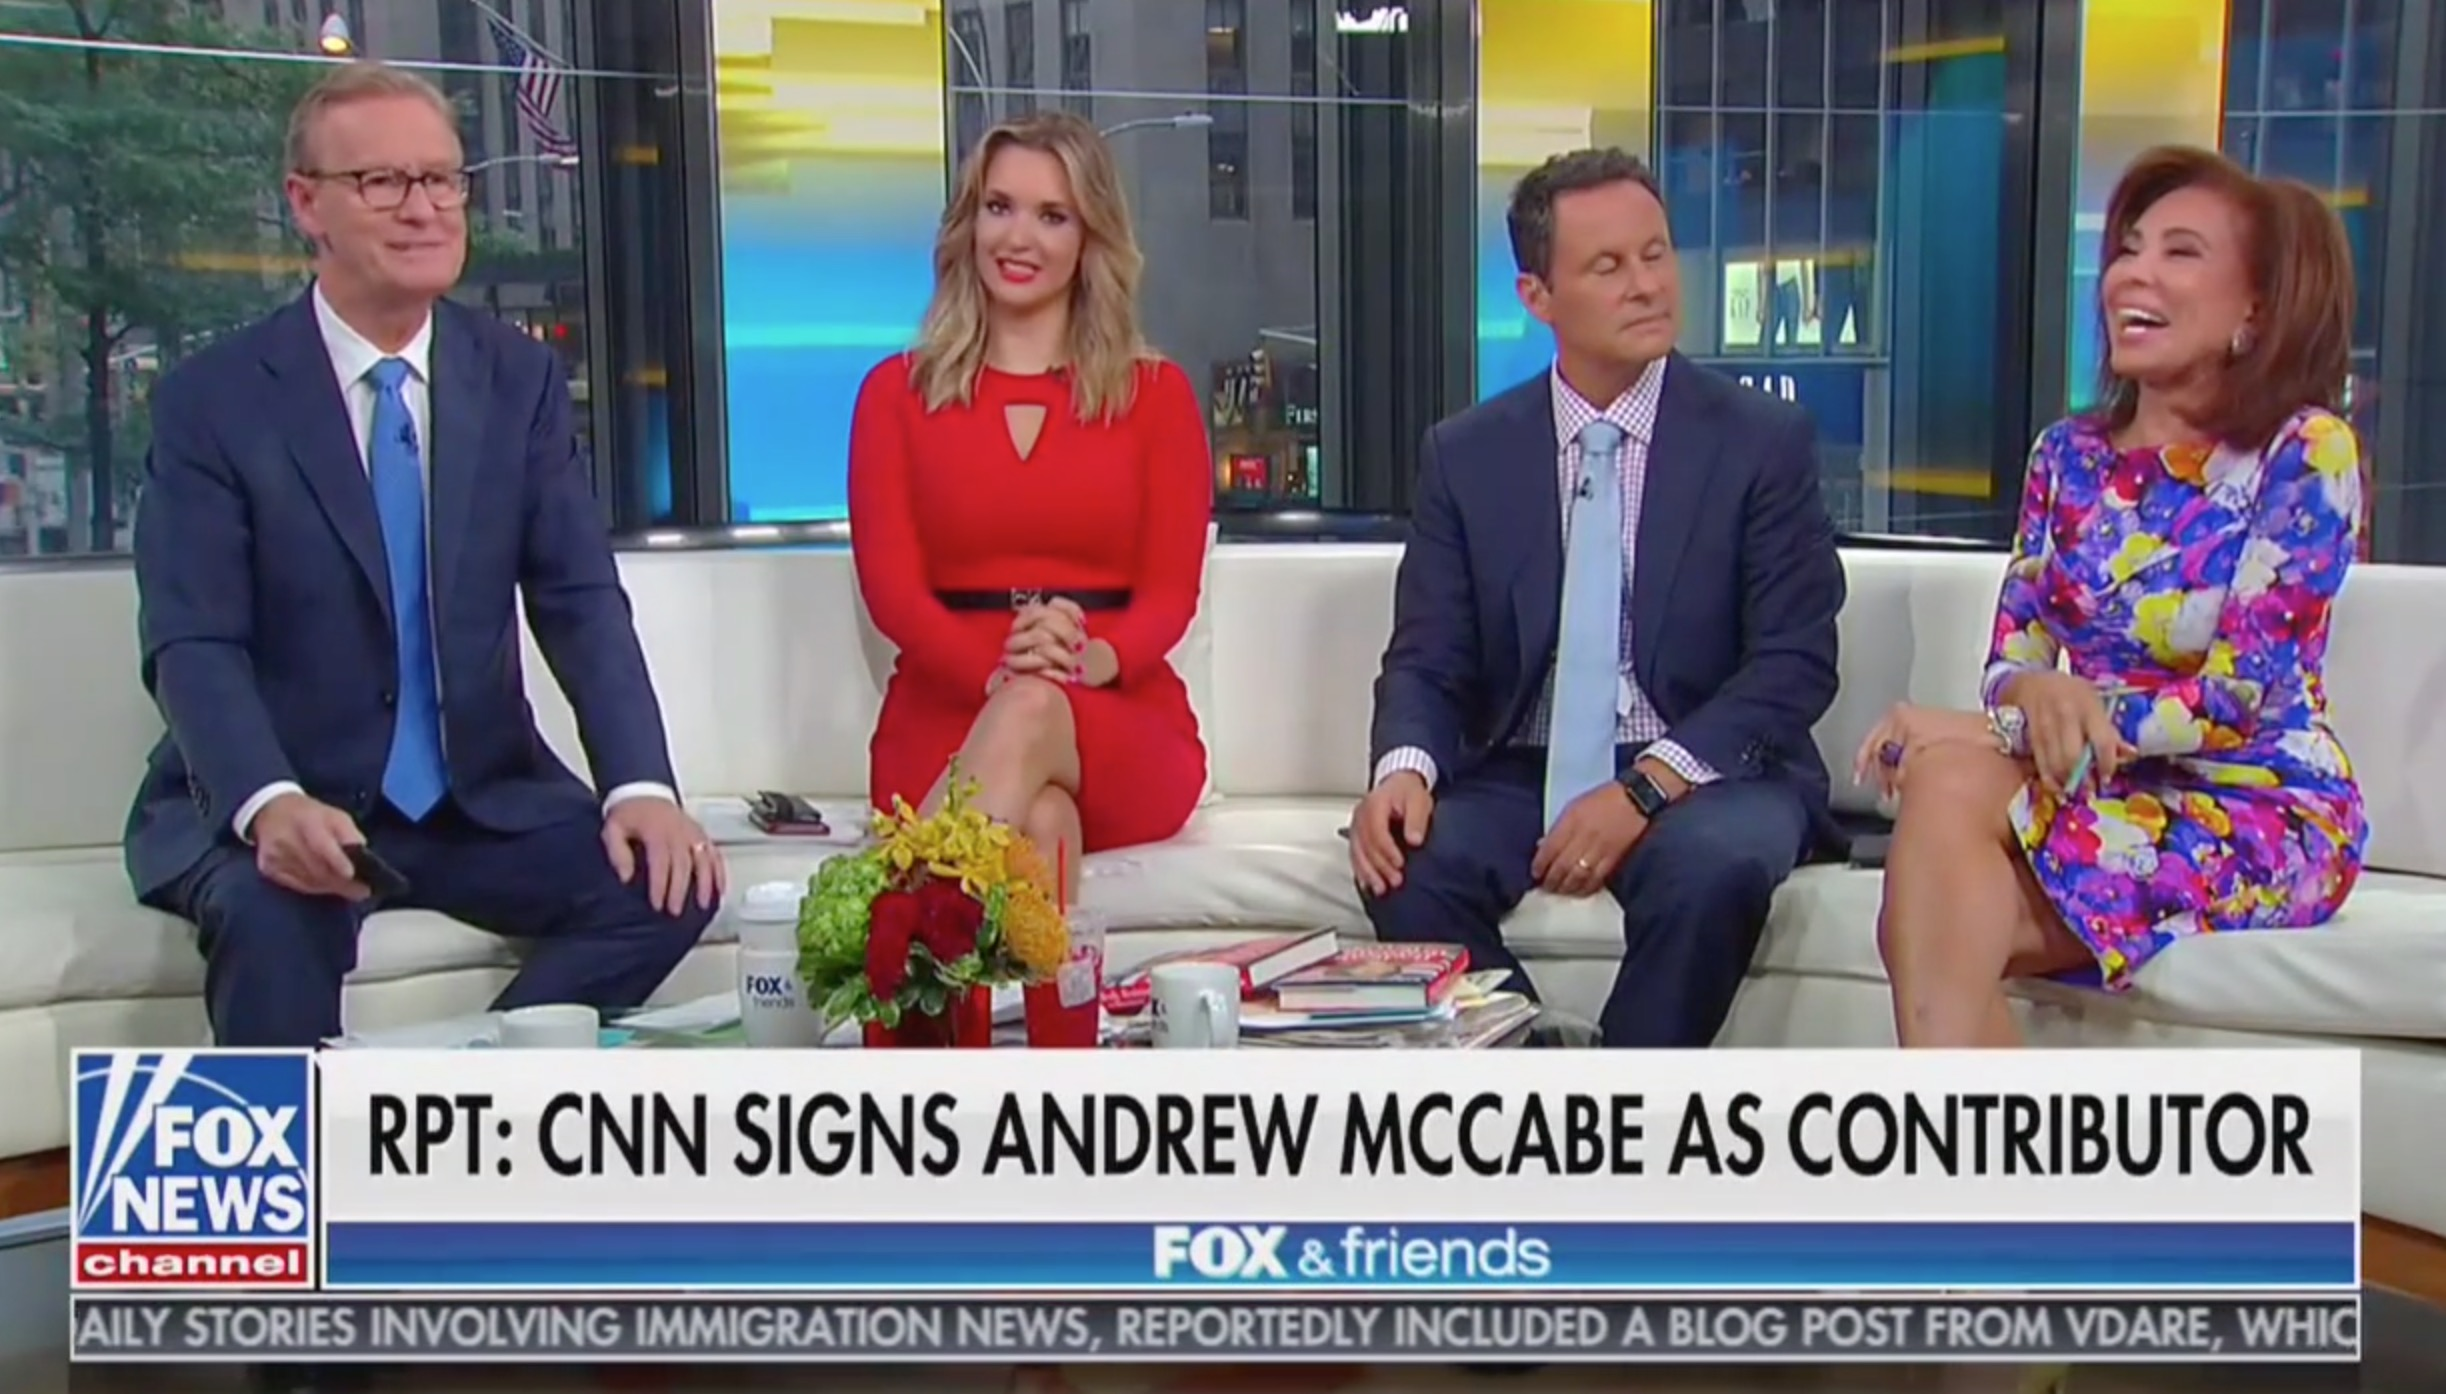 Watch Fox & Friends Laugh Out Loud at News That CNN Hired Andrew McCabe as Contributor